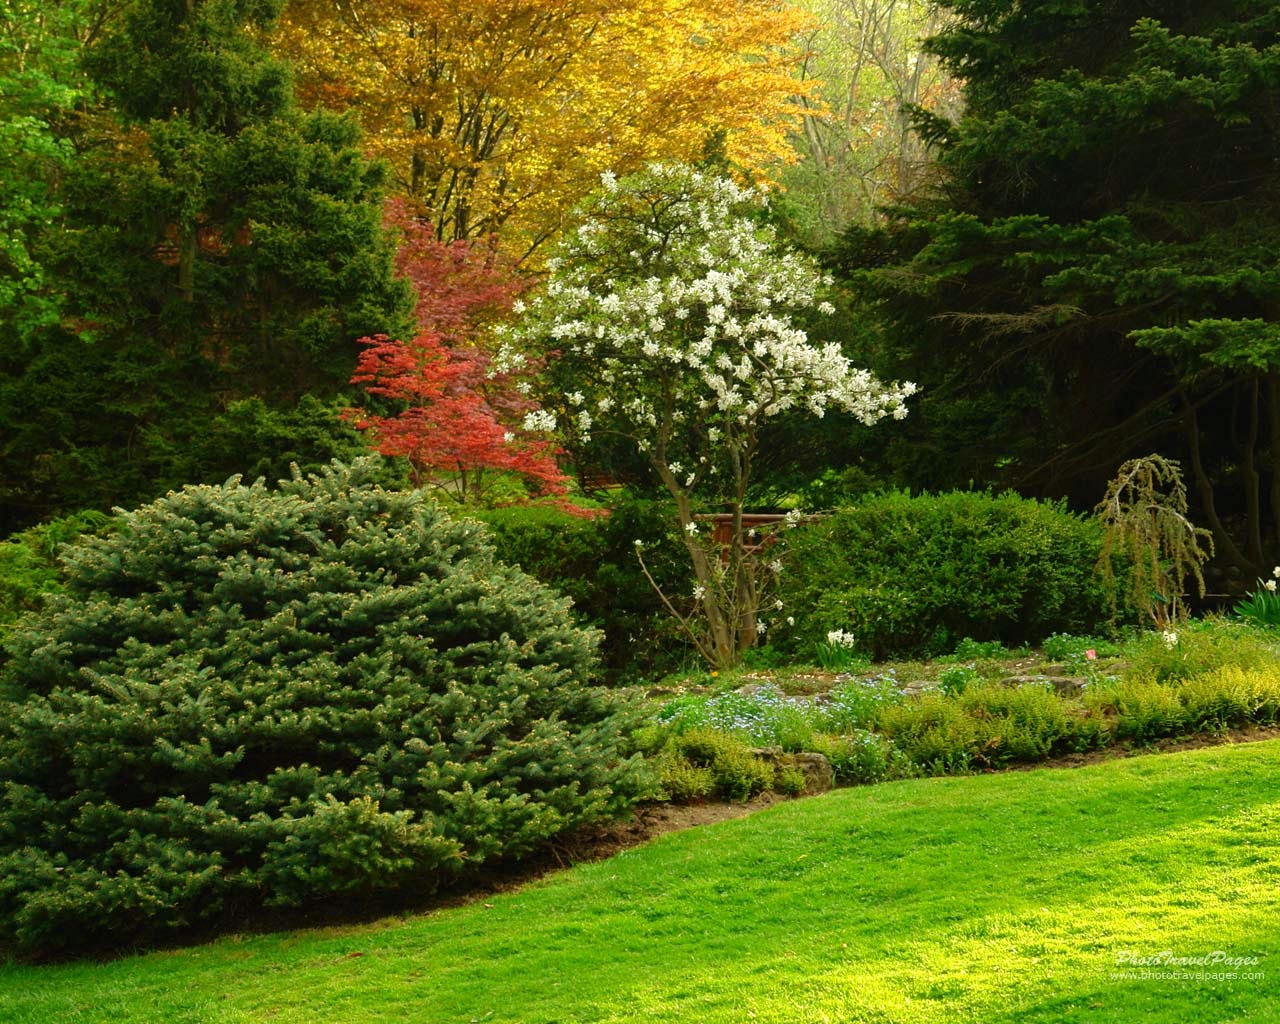 Garden wallpapers full hd wallpaper pic gallery for Beautiful garden images hd